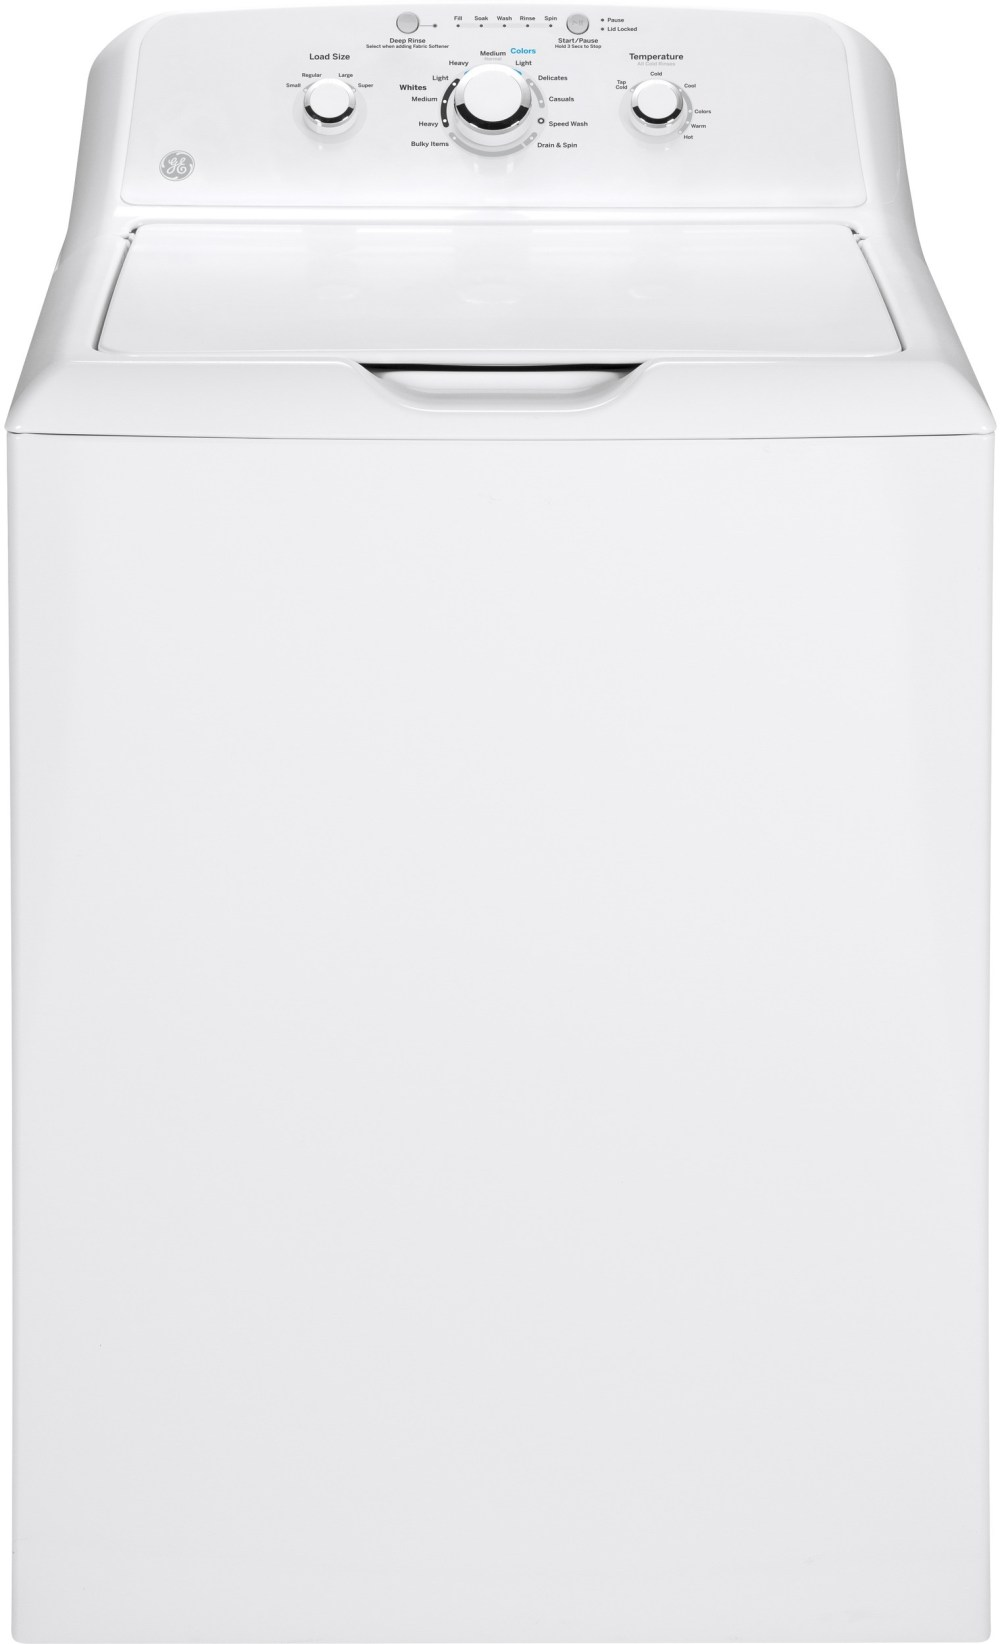 medium resolution of ge gtw330askww 27 inch 3 8 cu ft top load washer with 11 wash cycles 700 rpm deep rinse speed wash bleach and fabric softener dispensers